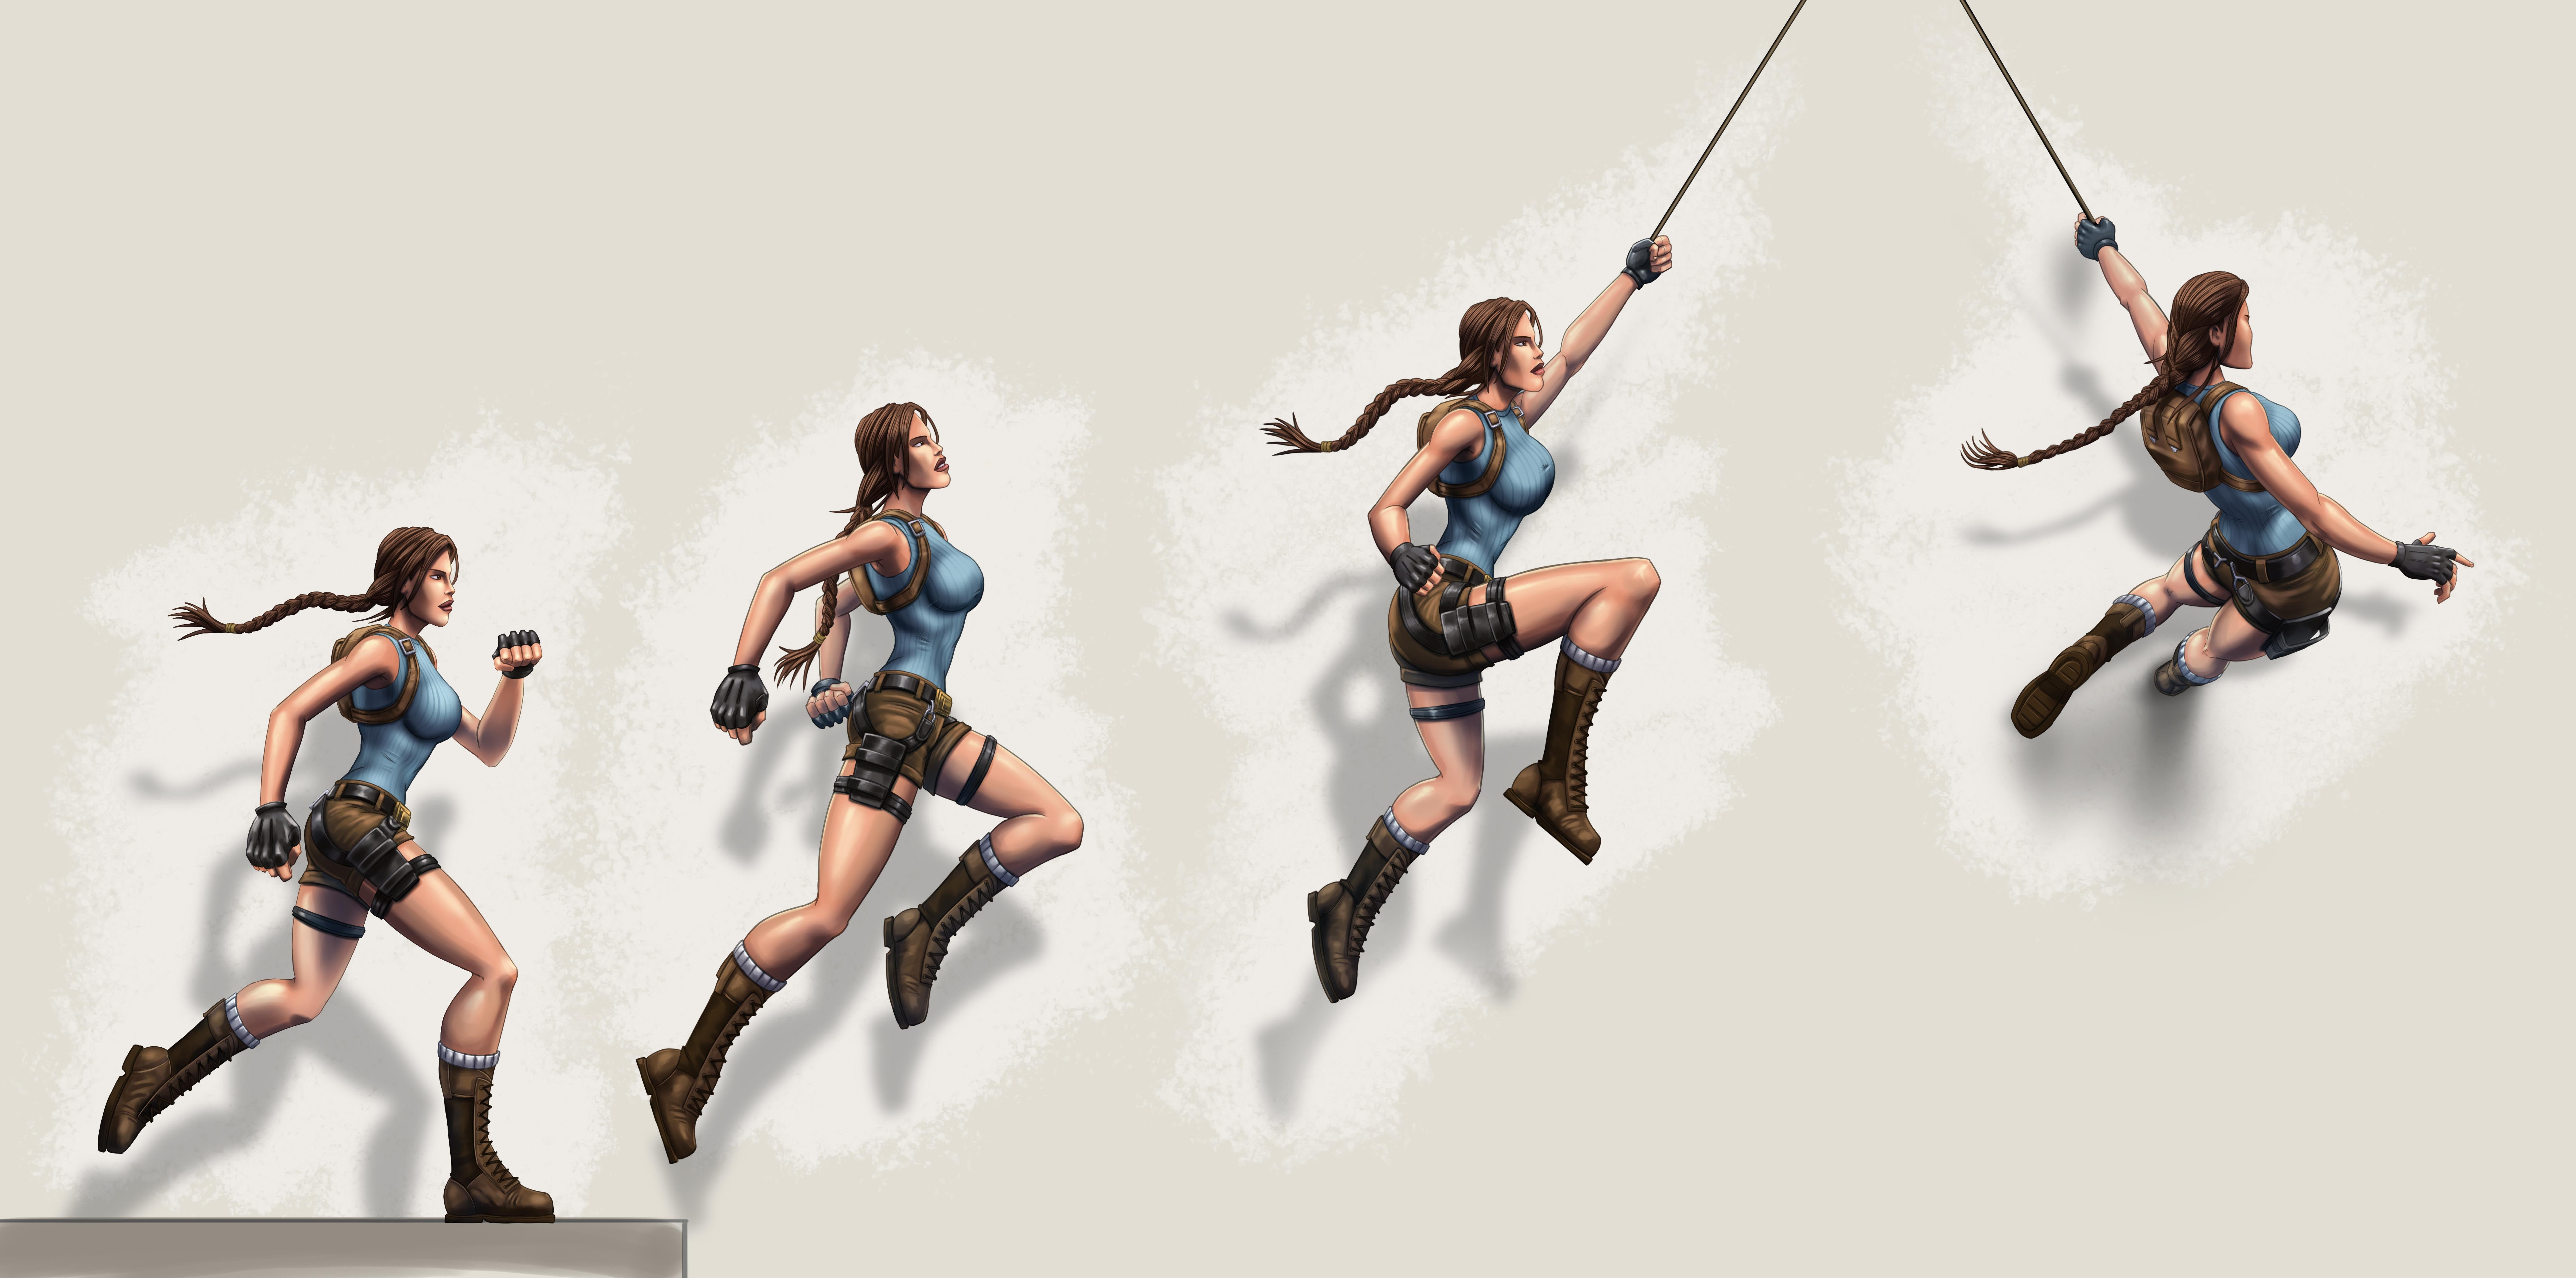 A graphic with Lara doing a run and rope grapple animation